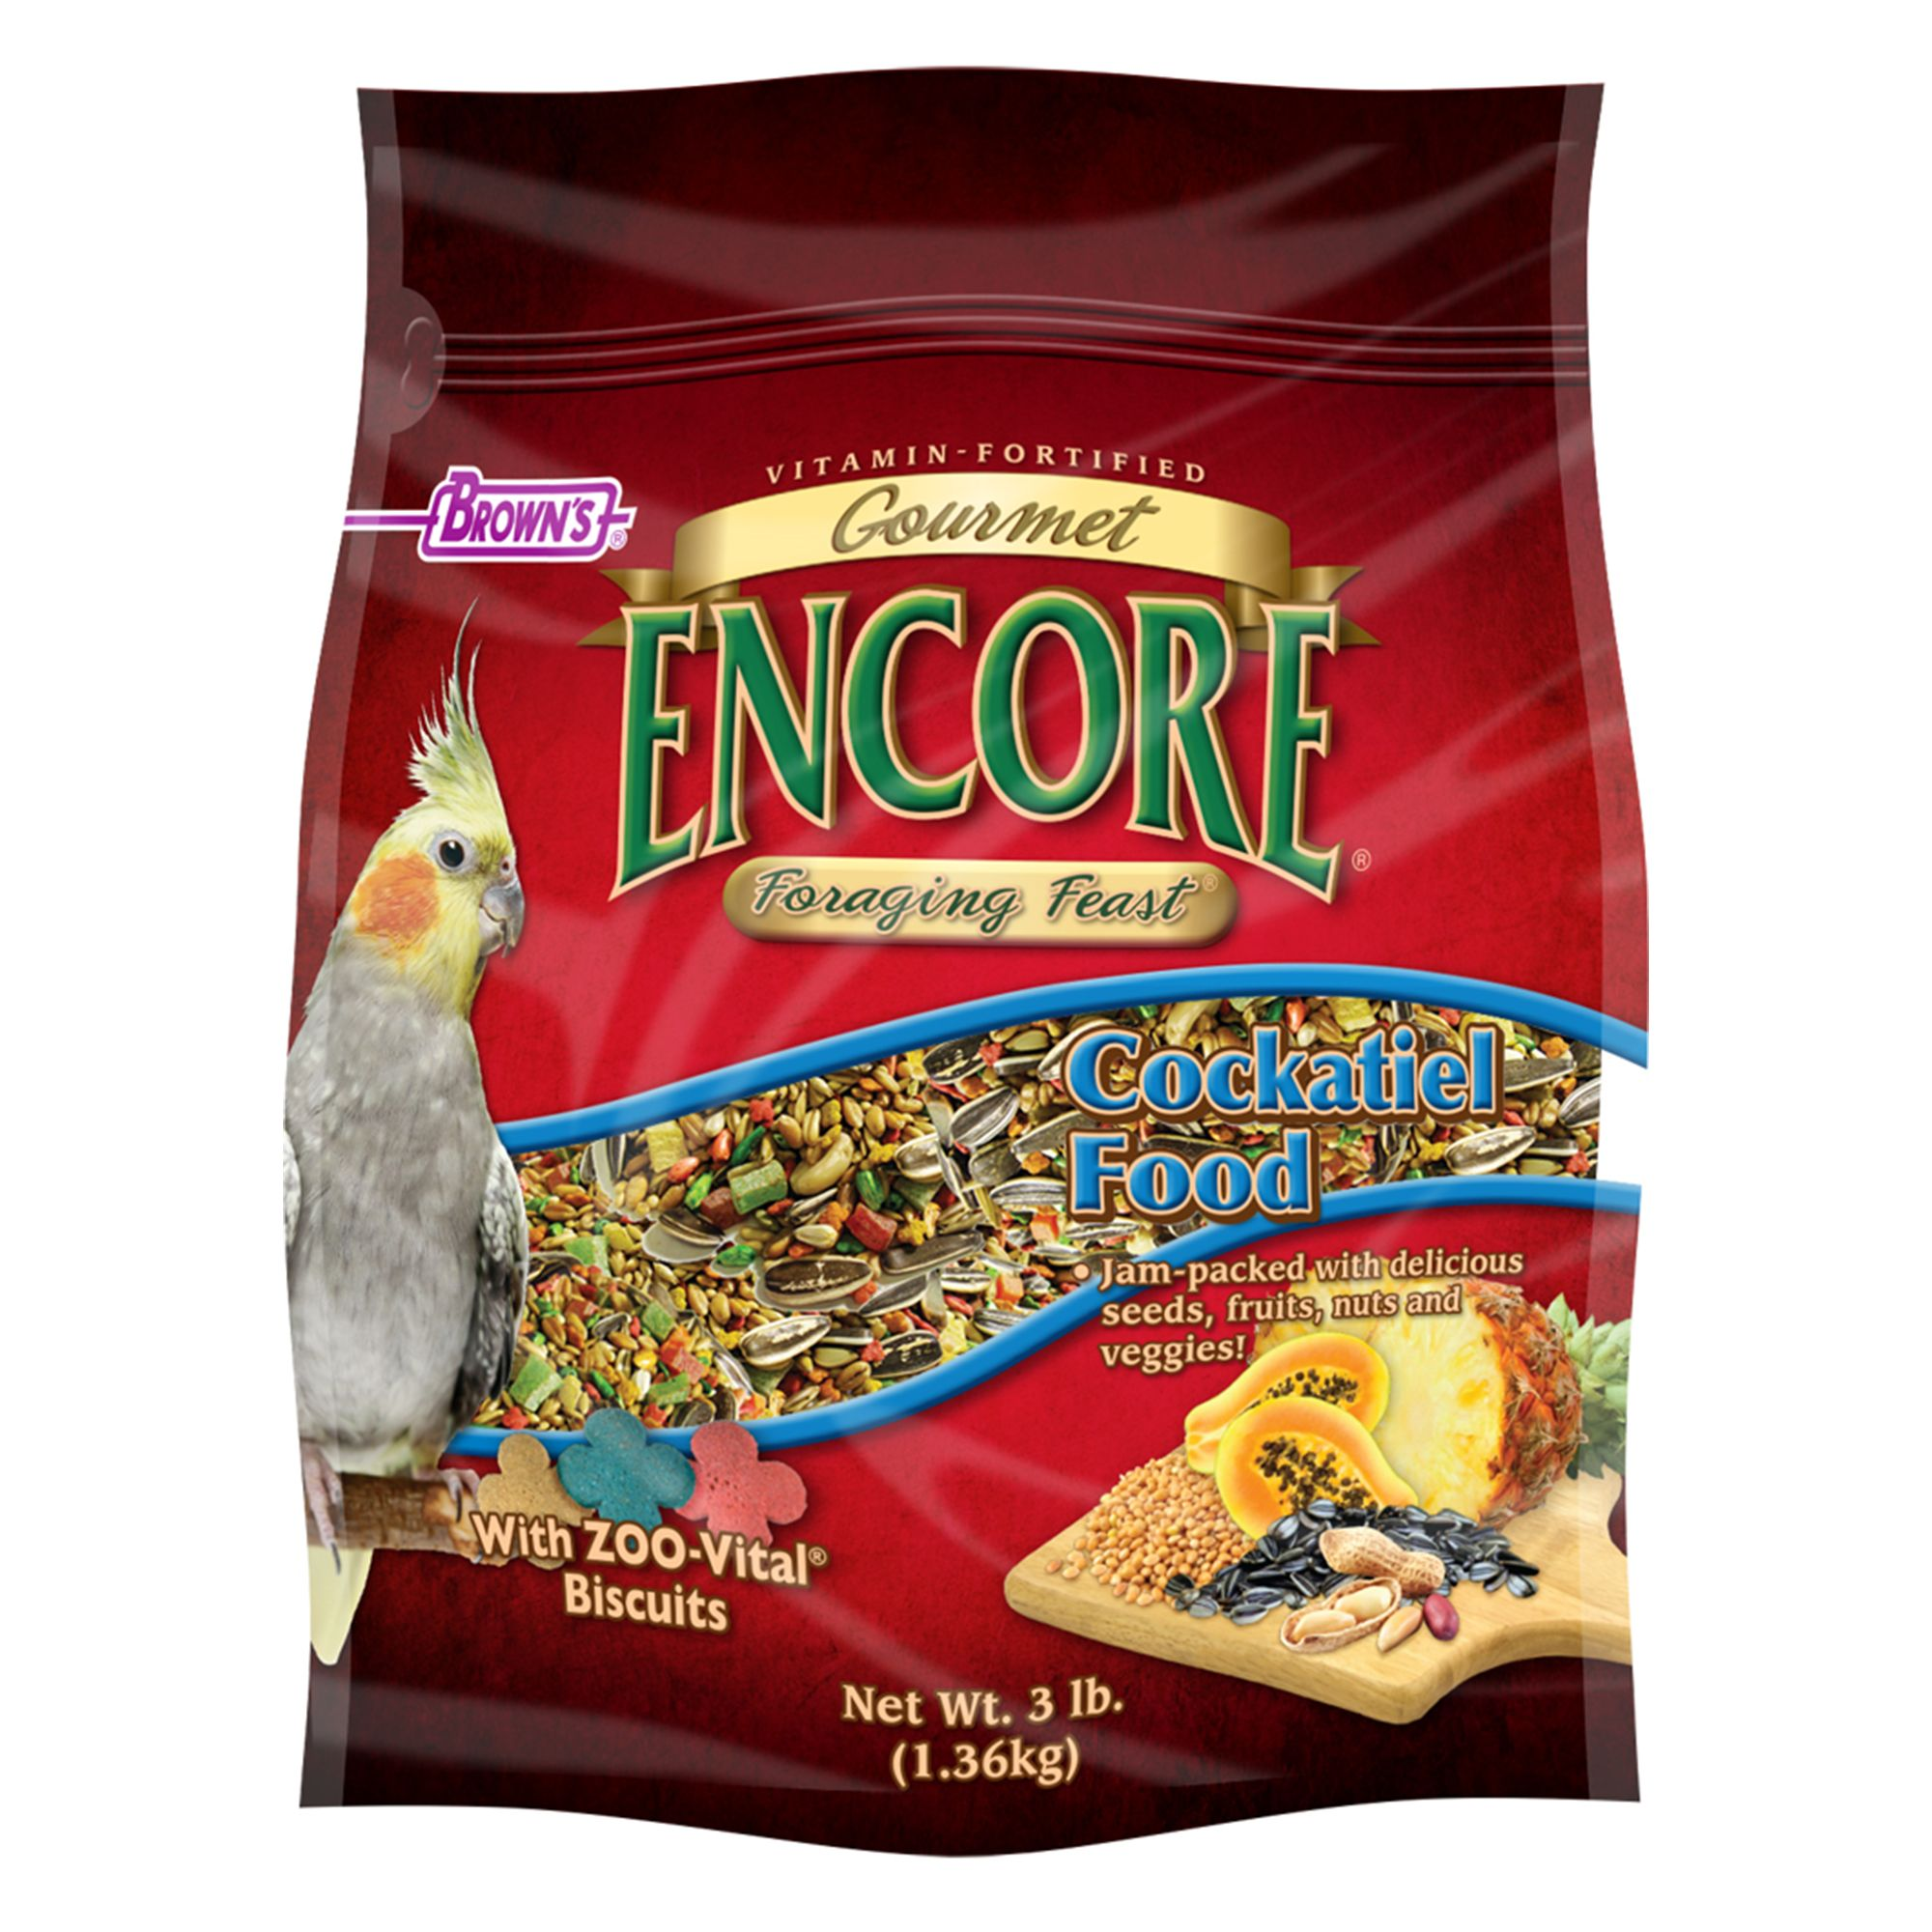 Brown's Encore Foraging Feast Cockatiels Food size: 3 Lb, FM Browns 5271524